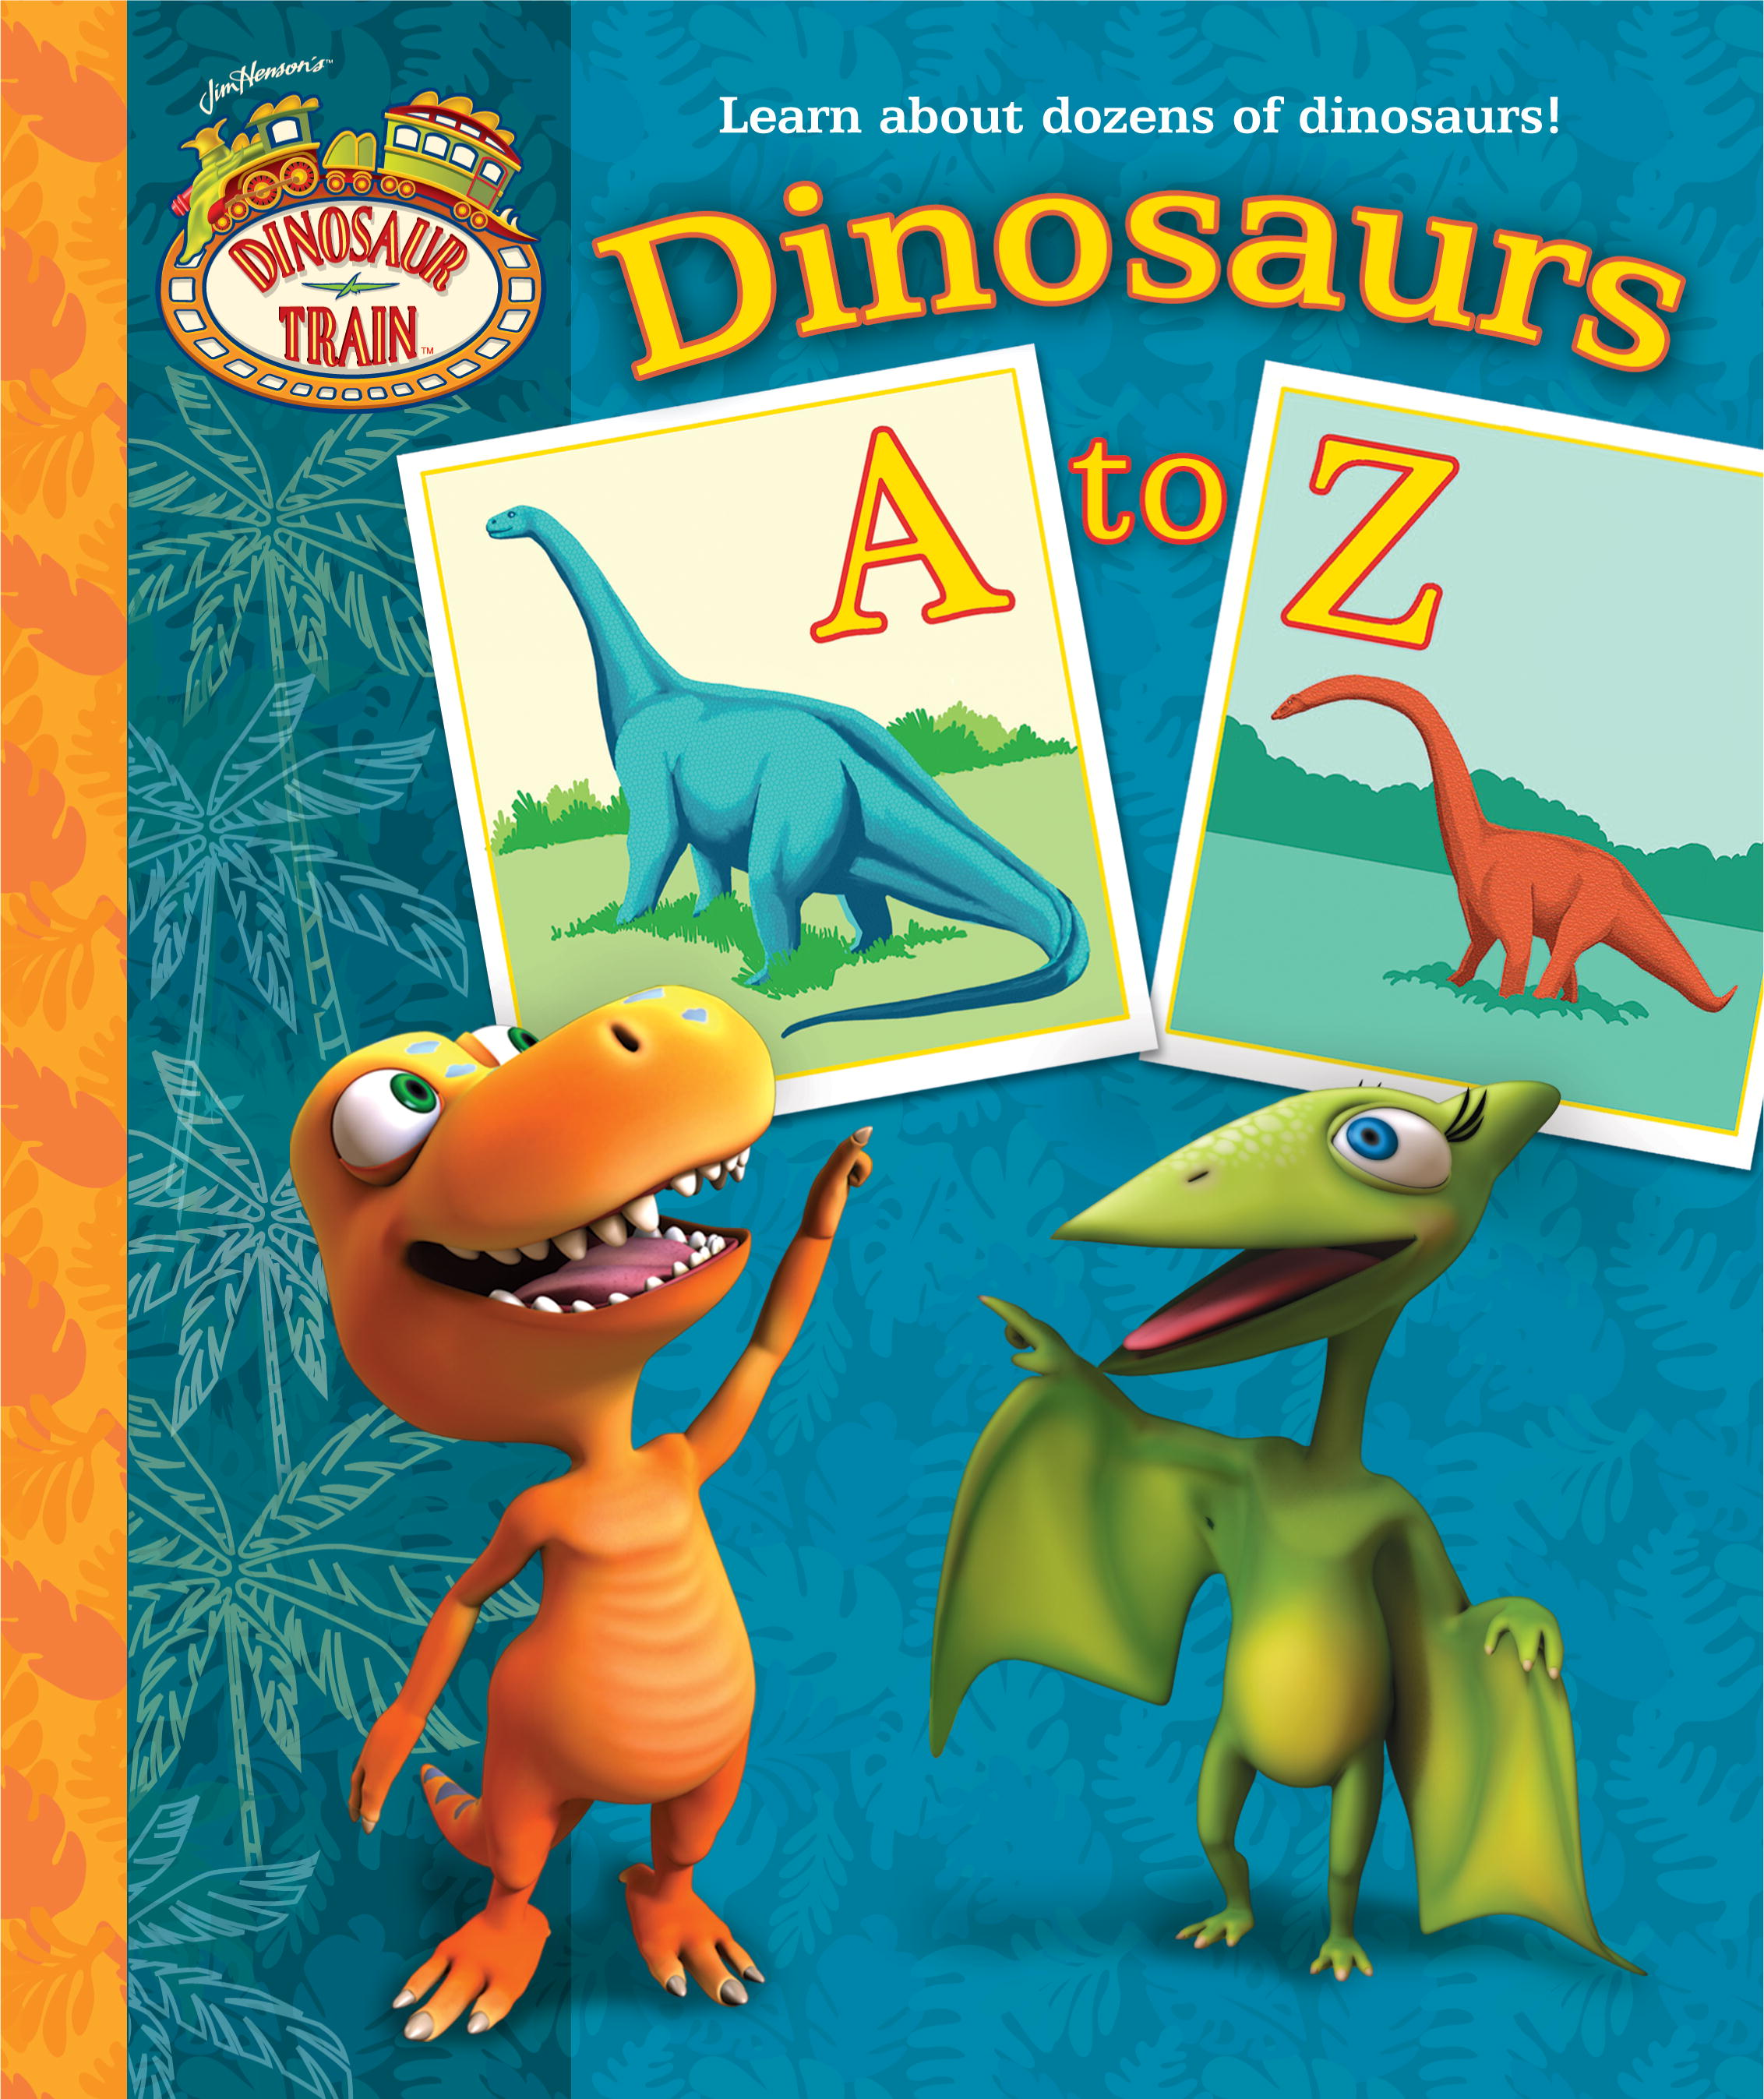 Dinosaur Train Dinosaurs A-Z Book Review & Giveaway US/CAN ...